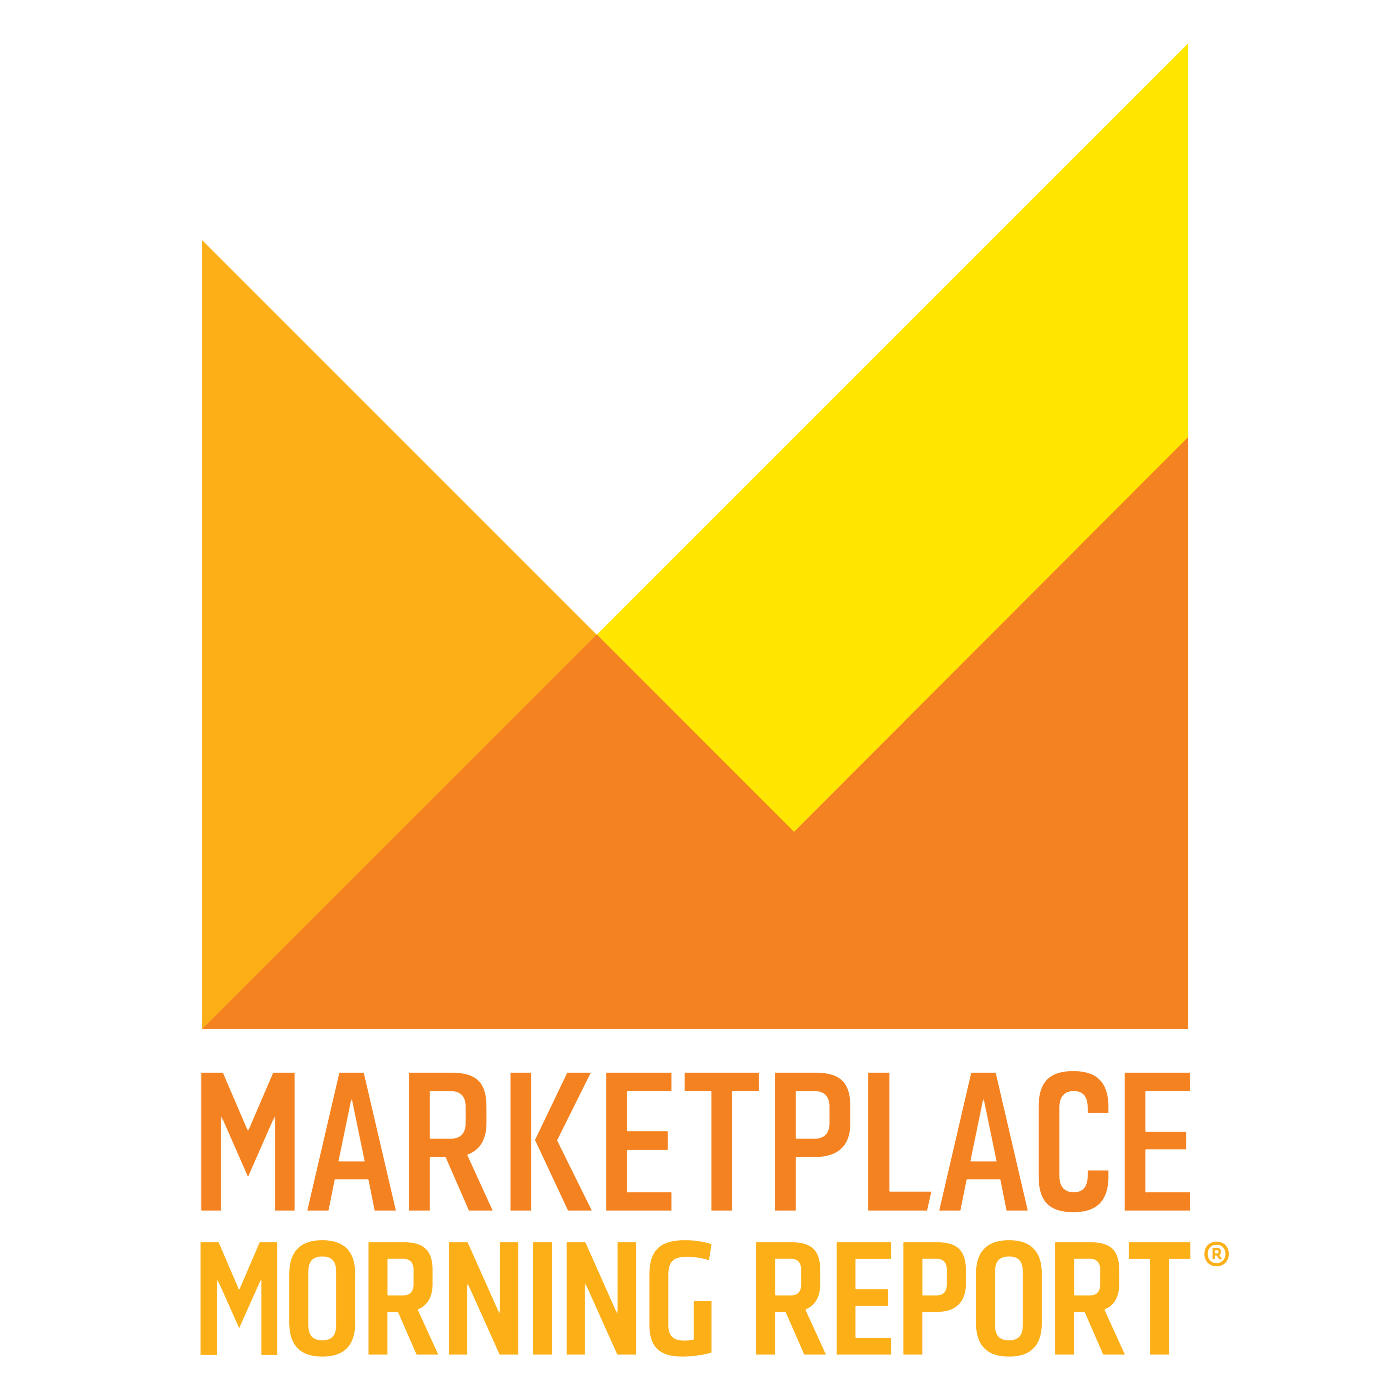 APM: Marketplace Morning Report – First Cast